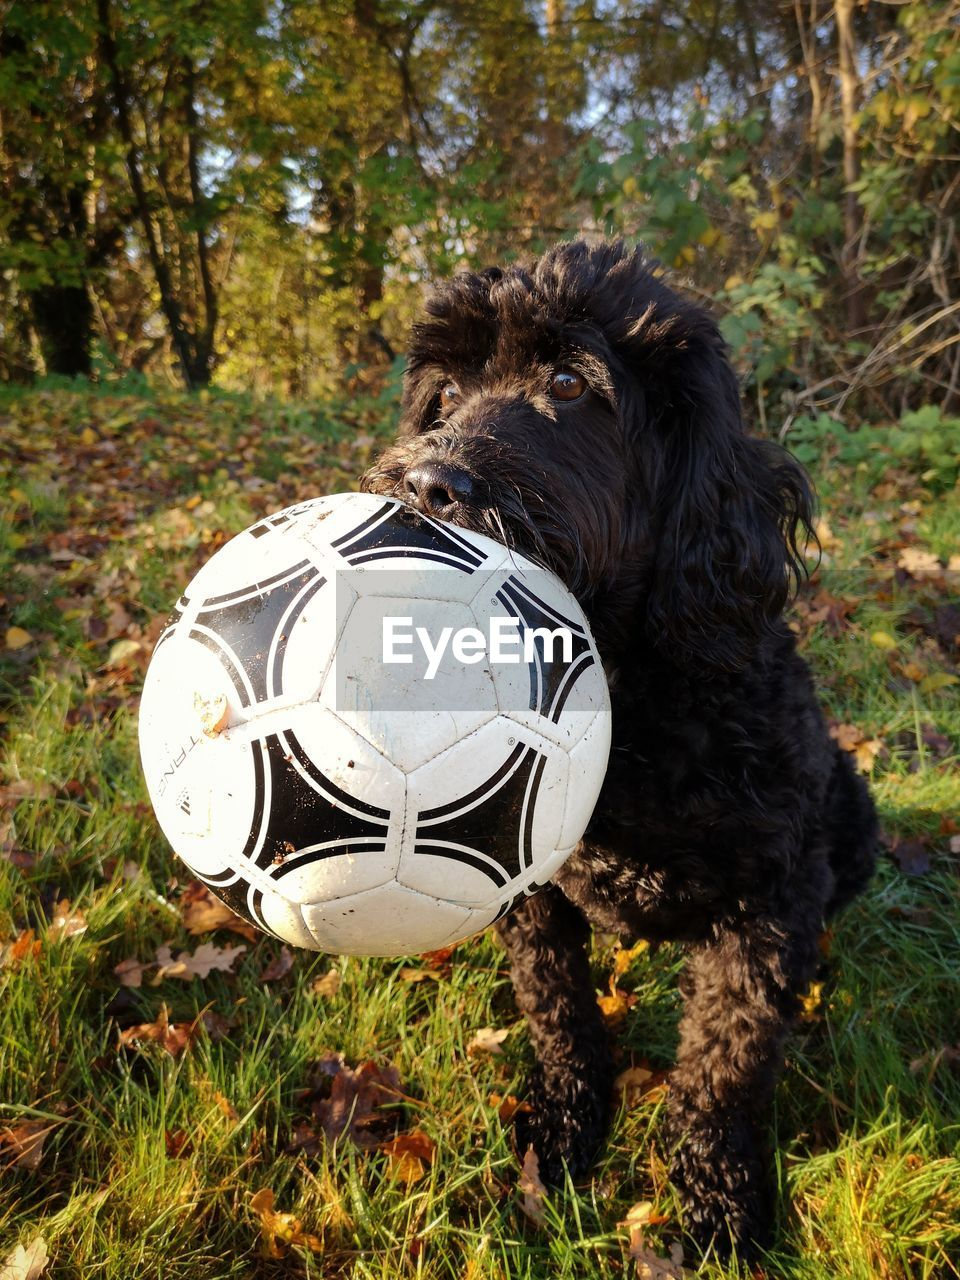 ball, sport, soccer, dog, one animal, canine, soccer ball, land, grass, animal, mammal, pets, domestic animals, domestic, team sport, animal themes, sports equipment, plant, nature, field, no people, outdoors